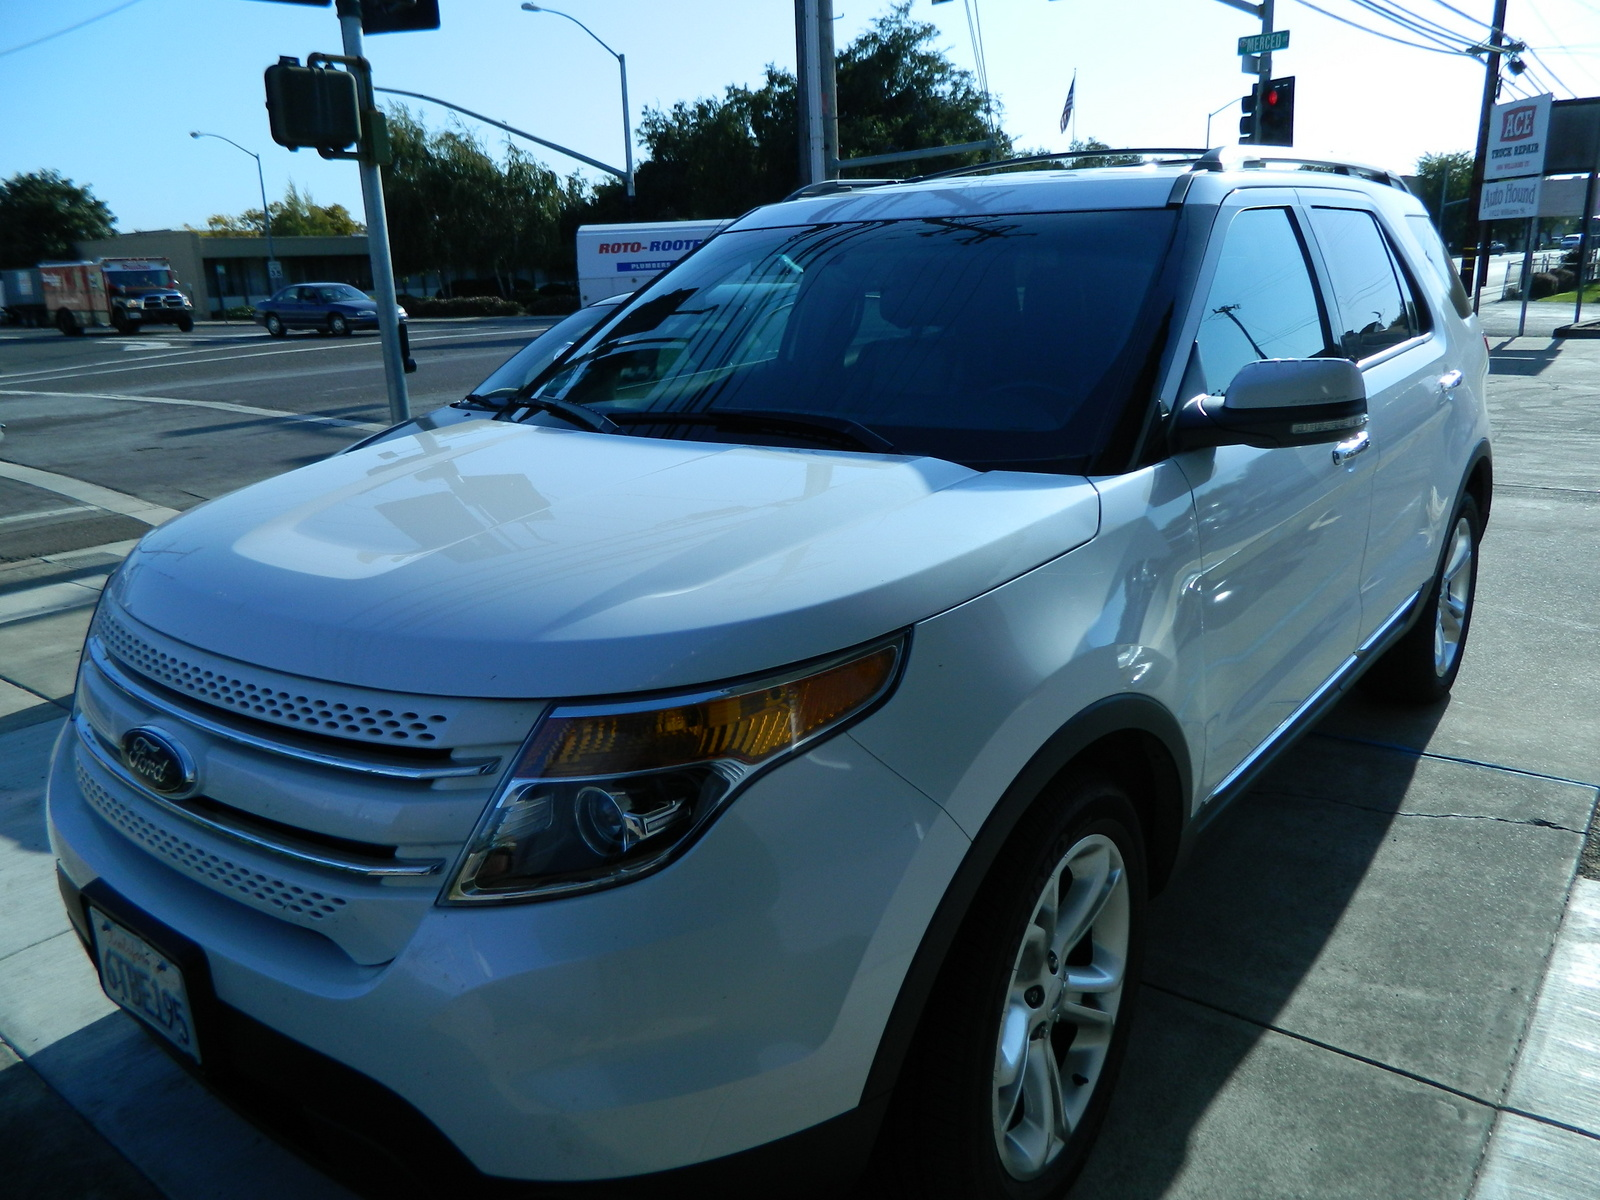 2012 ford explorer for sale in modesto ca cargurus. Black Bedroom Furniture Sets. Home Design Ideas